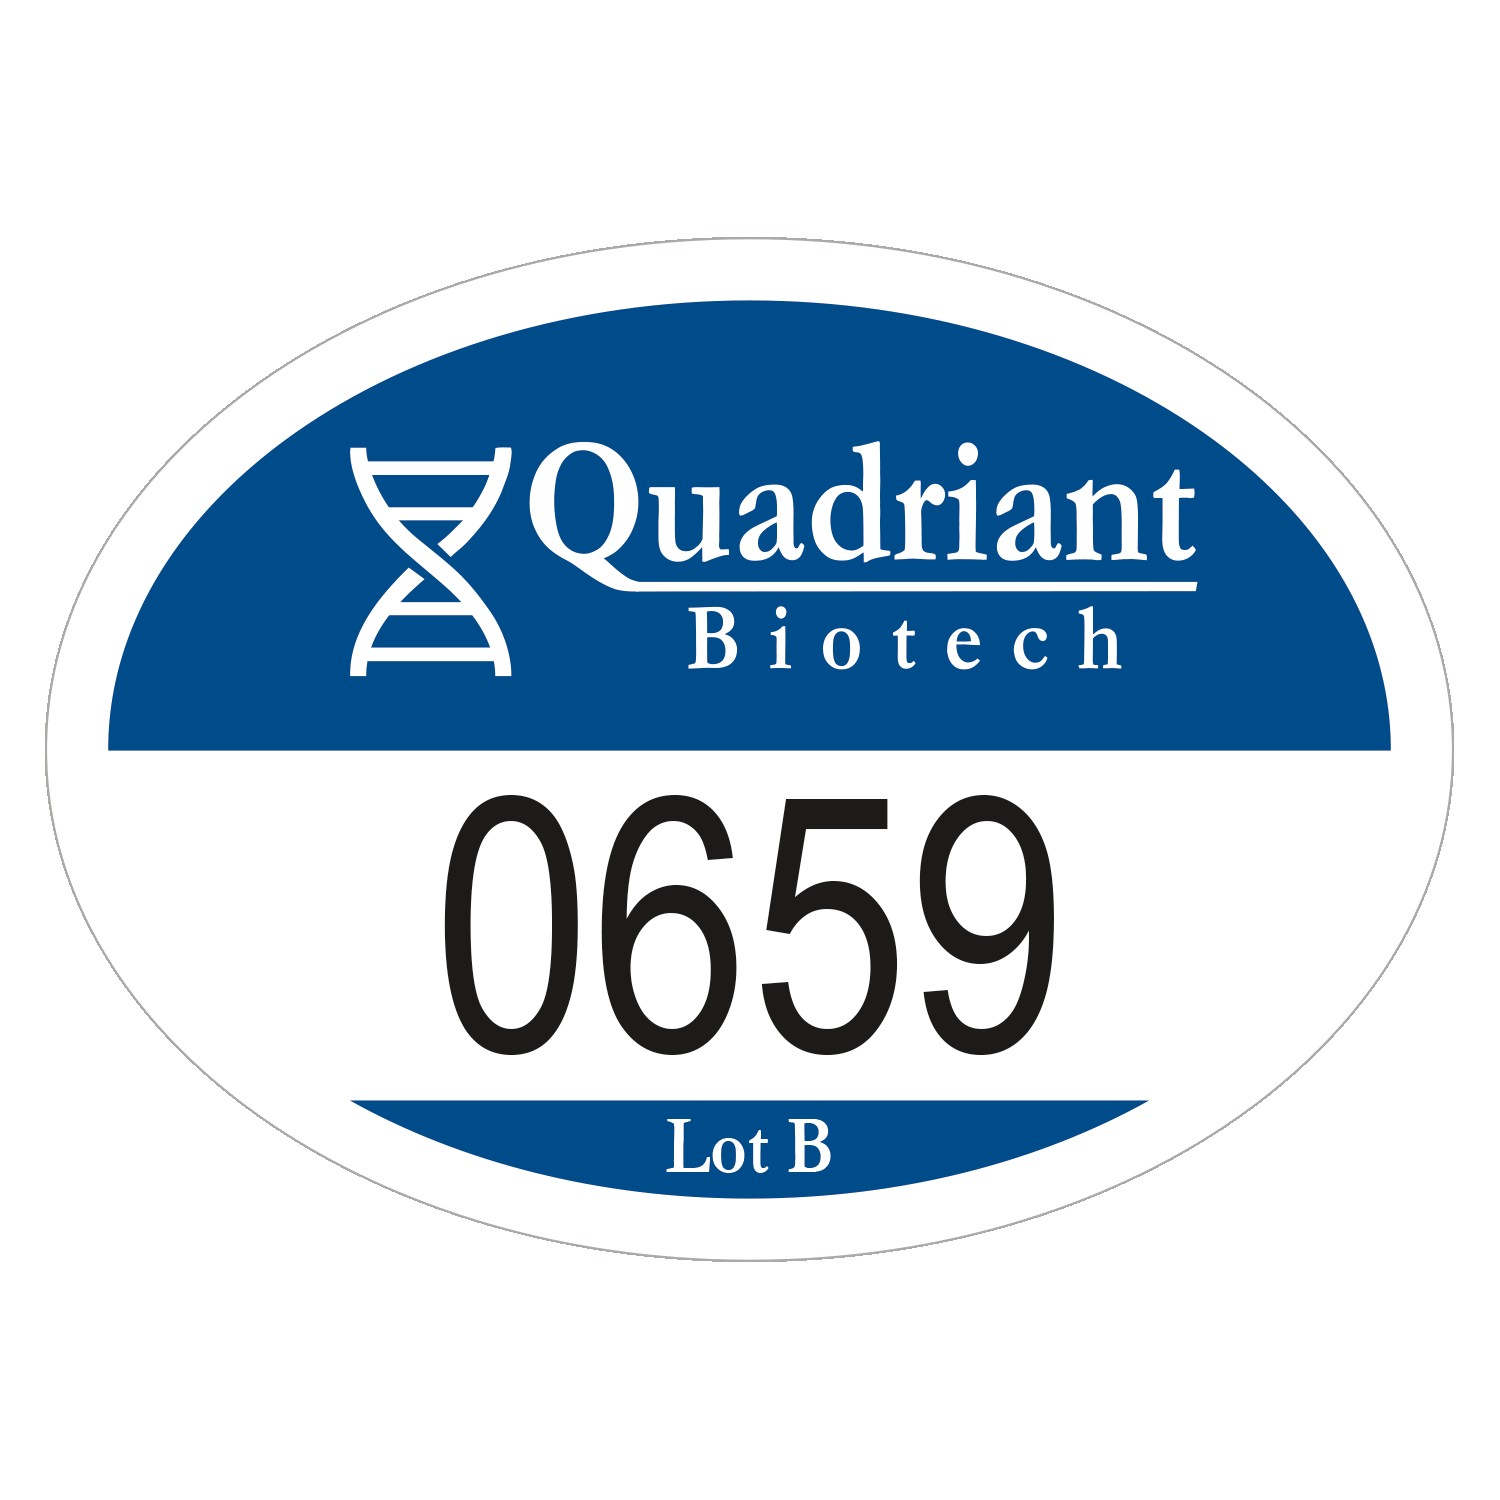 "715932486-183 - Oval White Vinyl Numbered Outside Parking Permit Decal (2""x2 3/4"") - thumbnail"